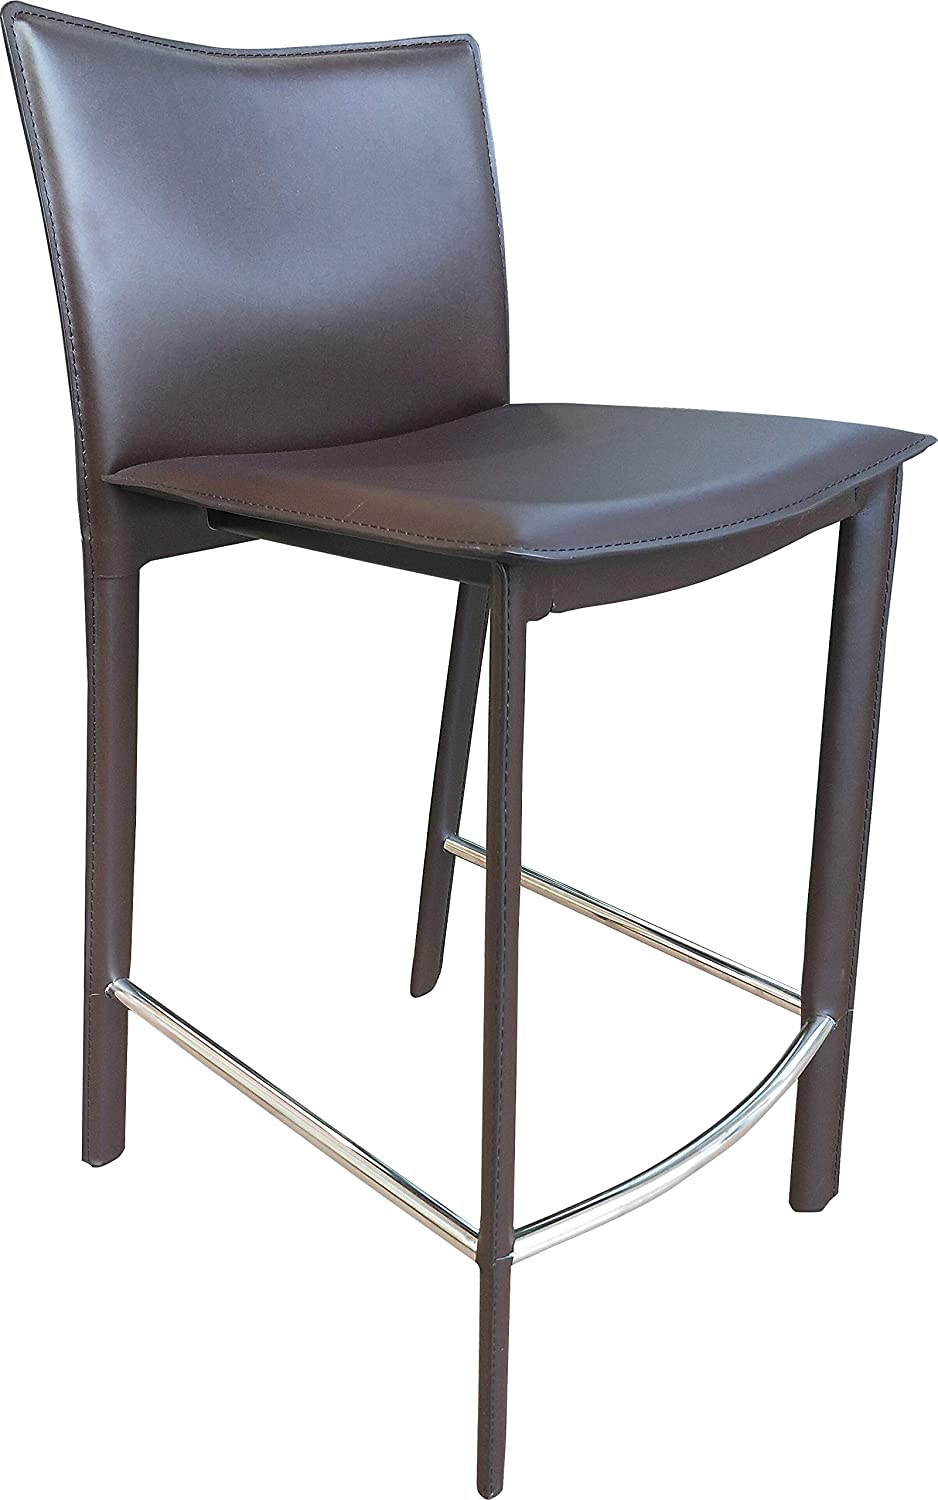 Moe's Home Collection Ponka Counter Stool, Dark Brown